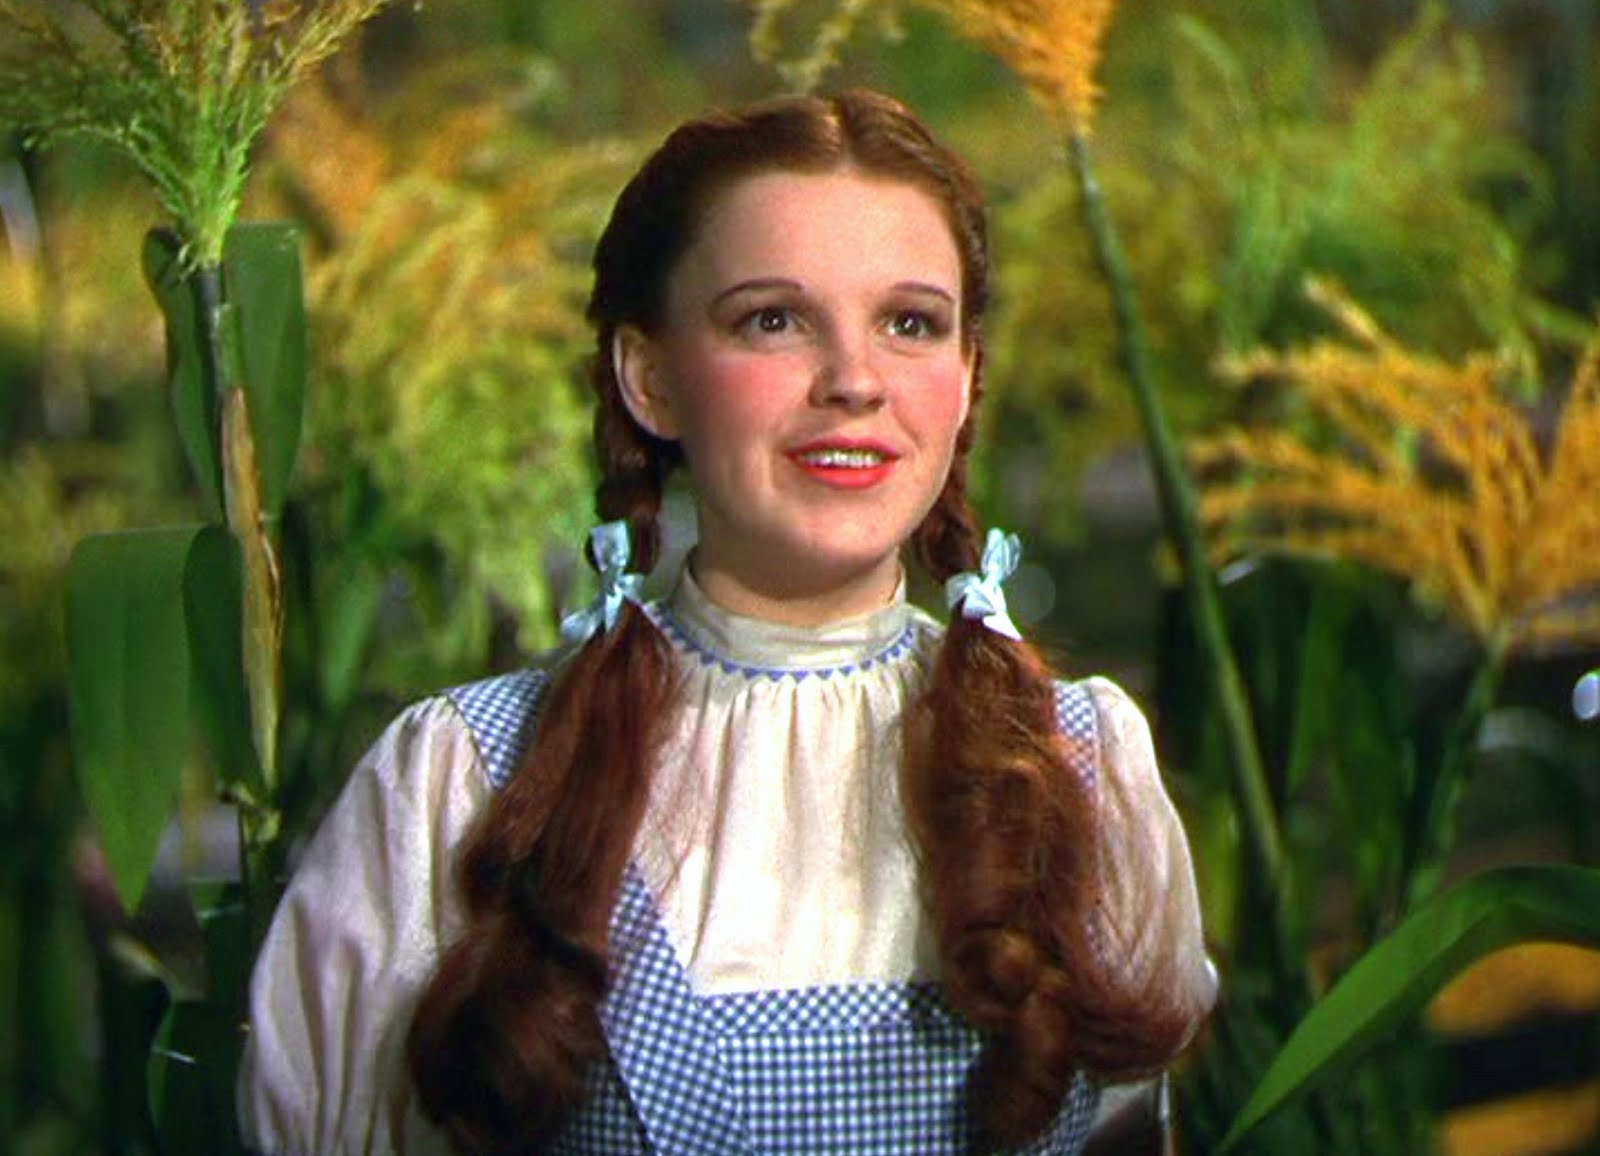 Judy in The Wizard of Oz